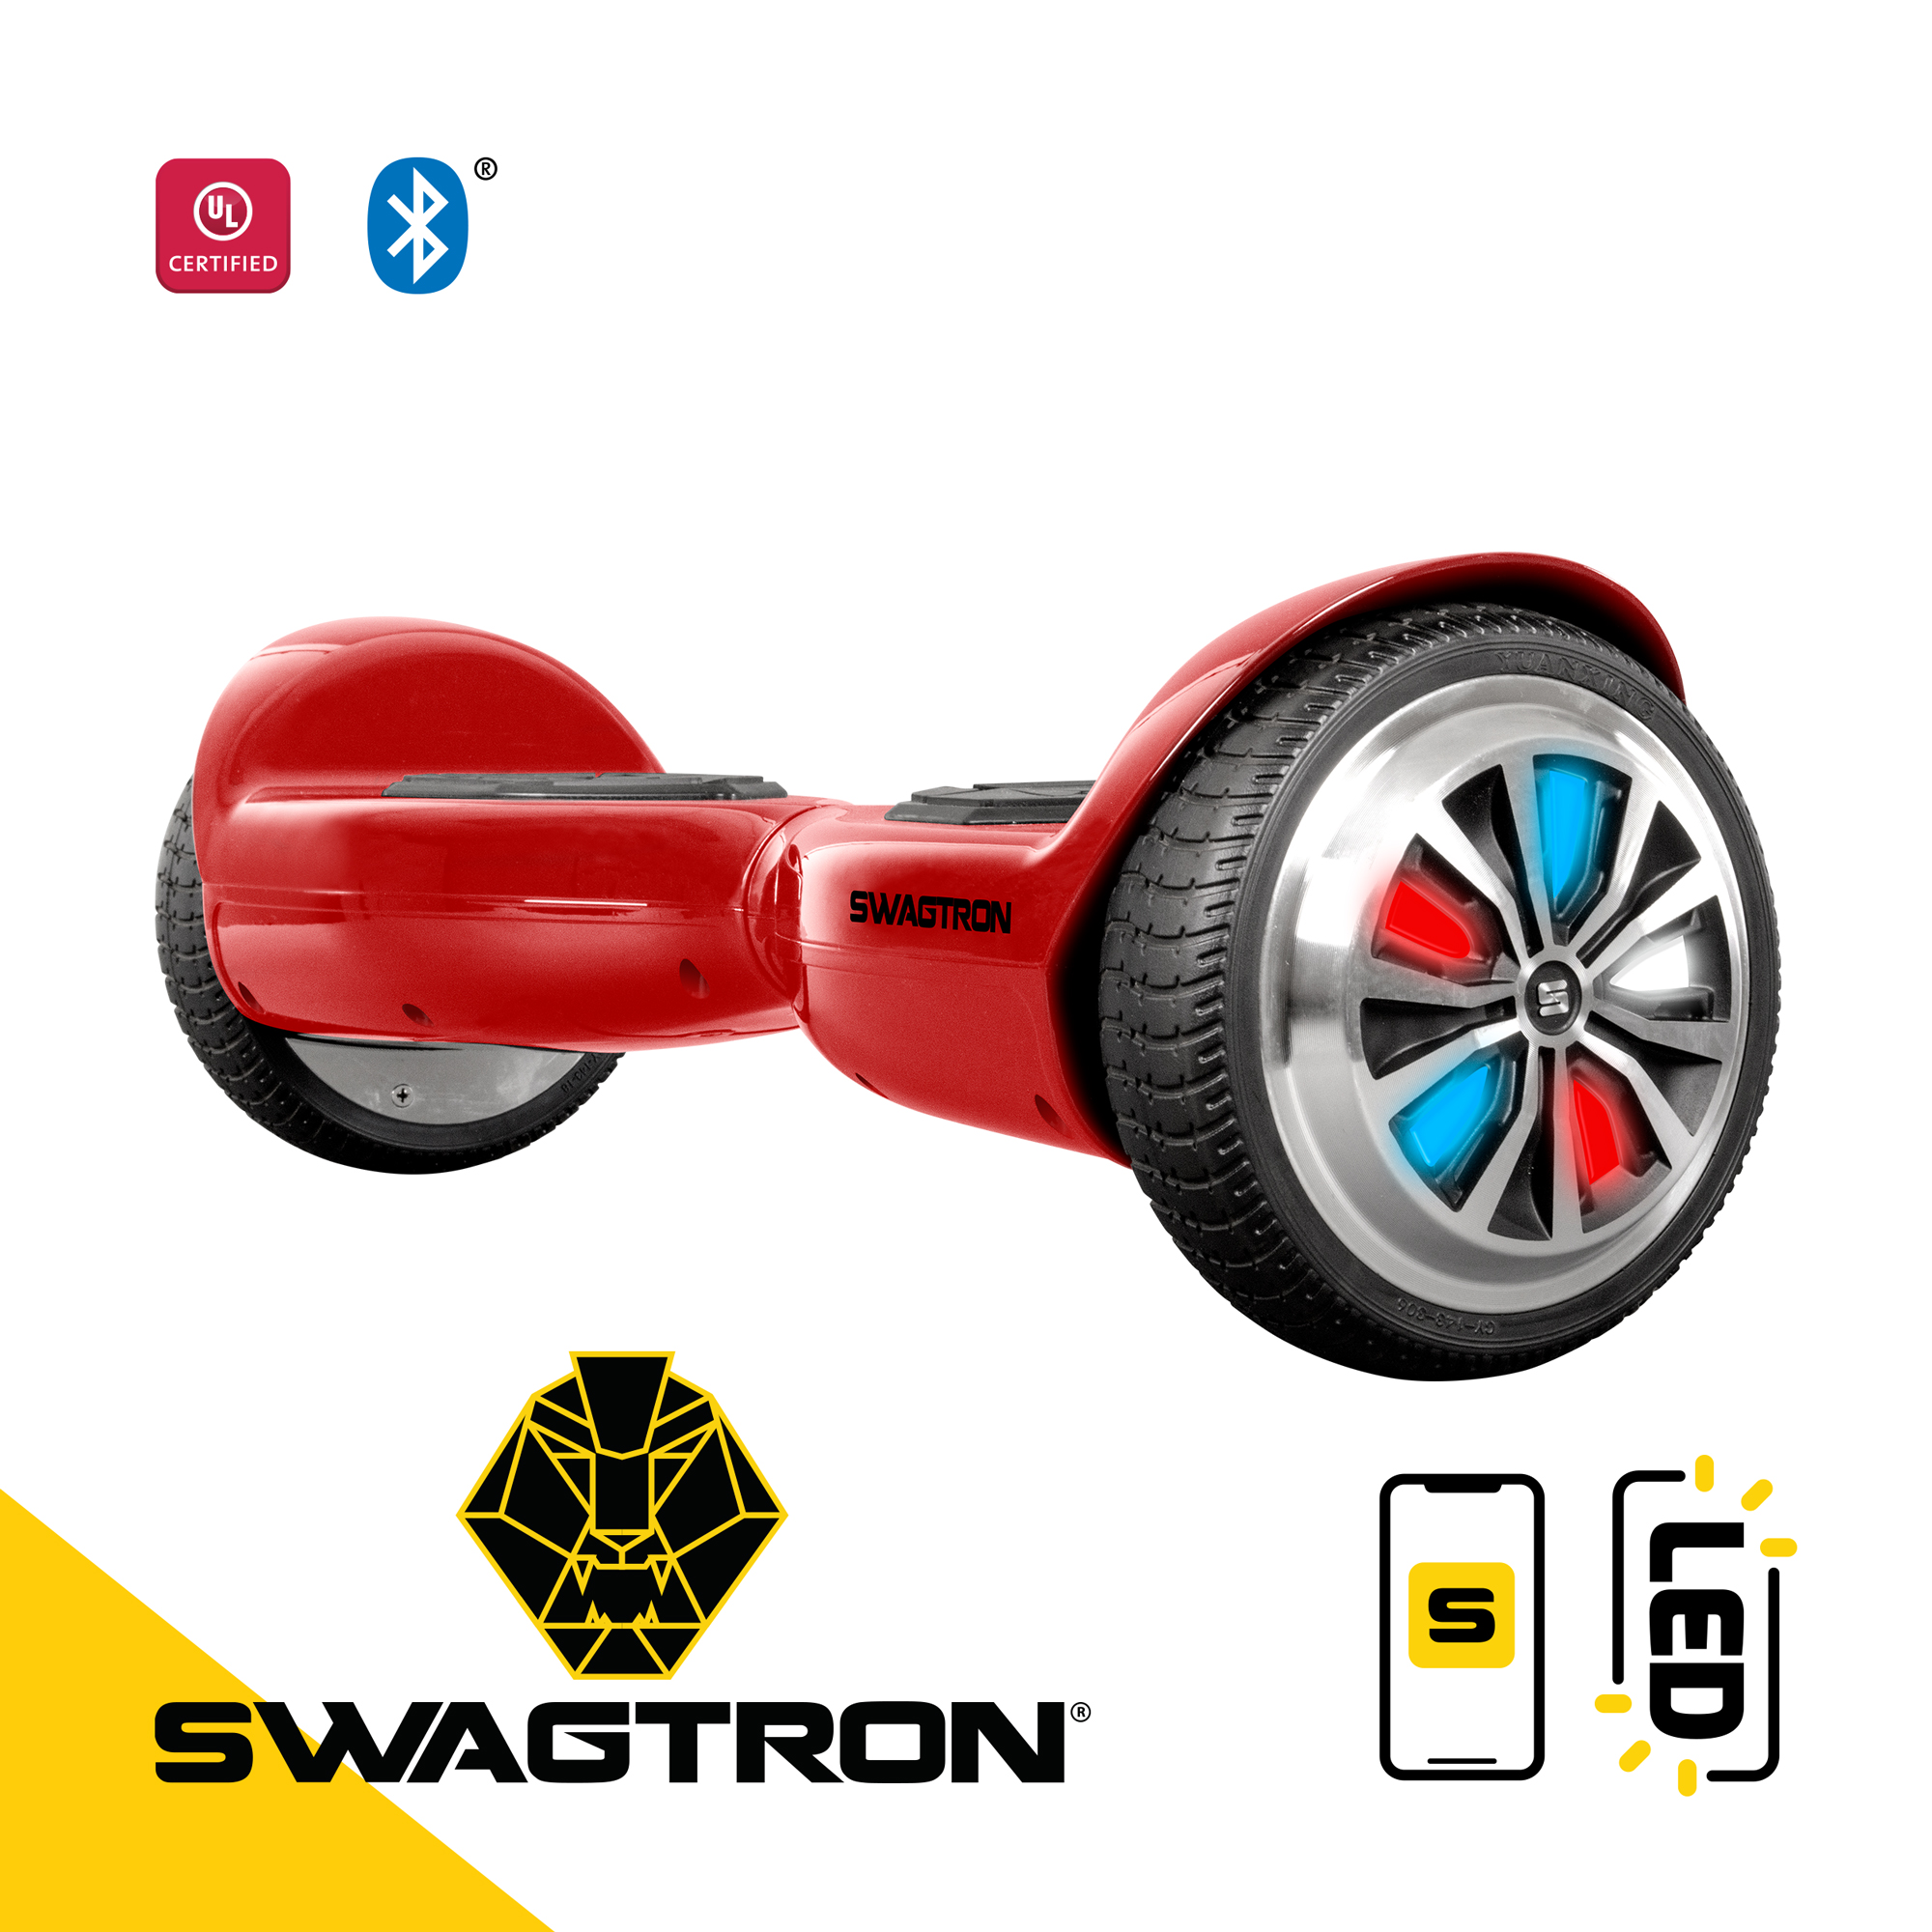 SWAGTRON Swagboard Classic T500 Bluetooth Hoverboard with LED Light Up Wheels and Patented Battery